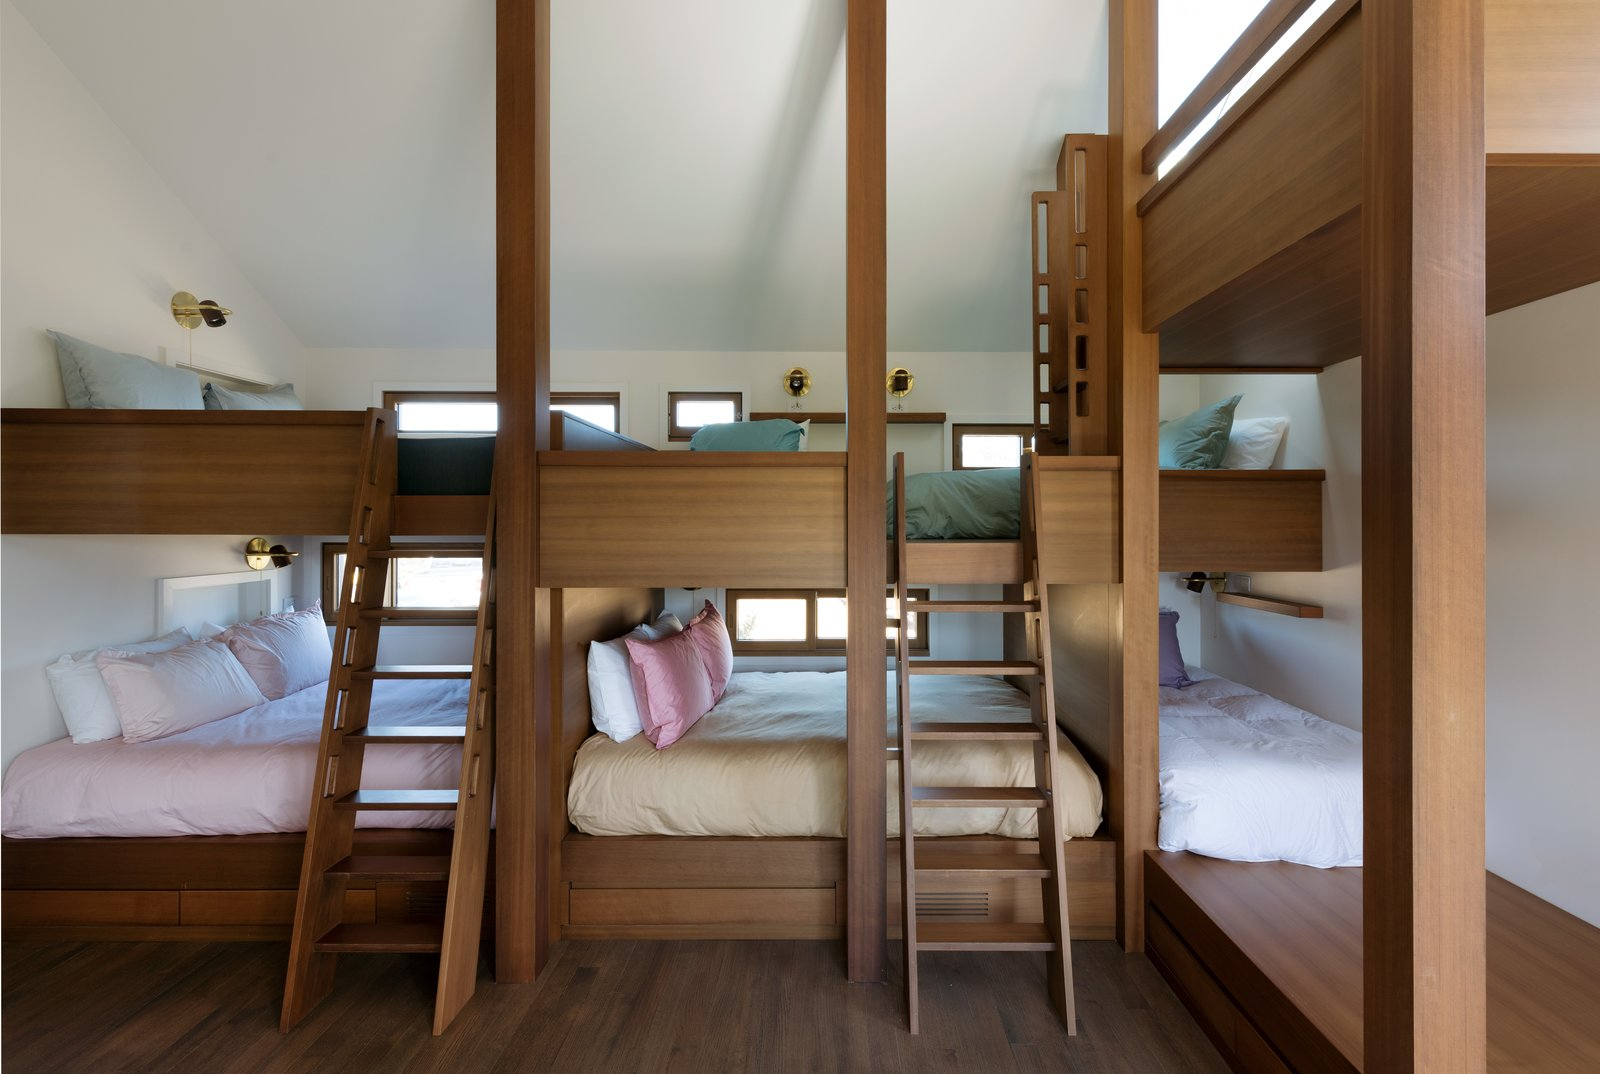 """Bedroom and Medium Hardwood Floor """"The two queen bedrooms can handle two couples, while the bunk-bed room can handle all the kids,"""" Thompson says. She also made sure every bunk had a window, to act as a """"mini room.""""    Photo 5 of 6 in A Saltbox Home Is Revamped to Embrace its Sublime Cove Setting"""